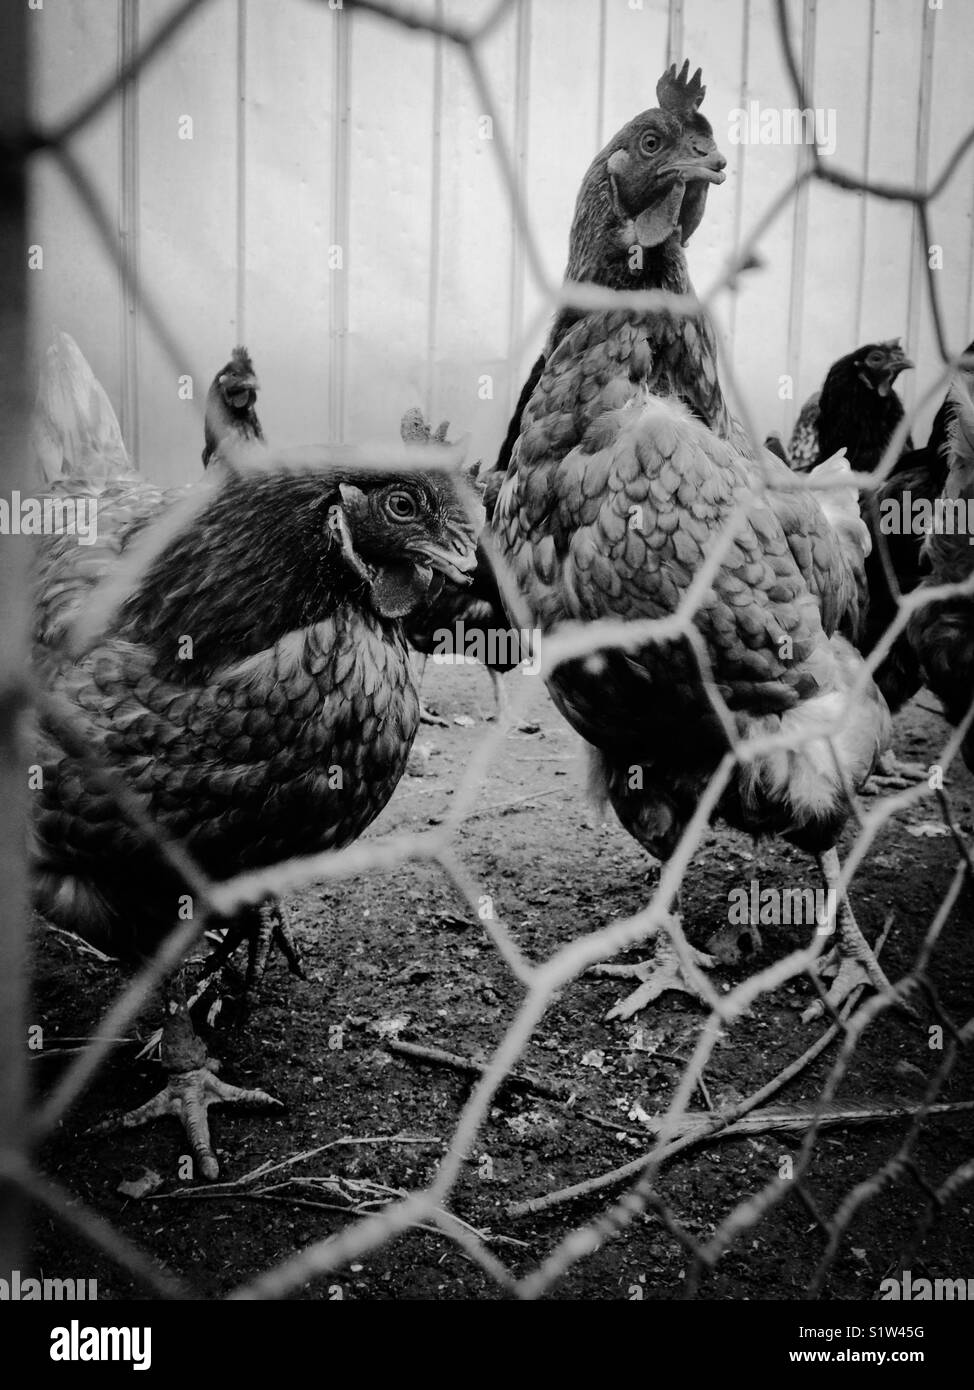 Black and white photo of chickens behind chicken wire - Stock Image